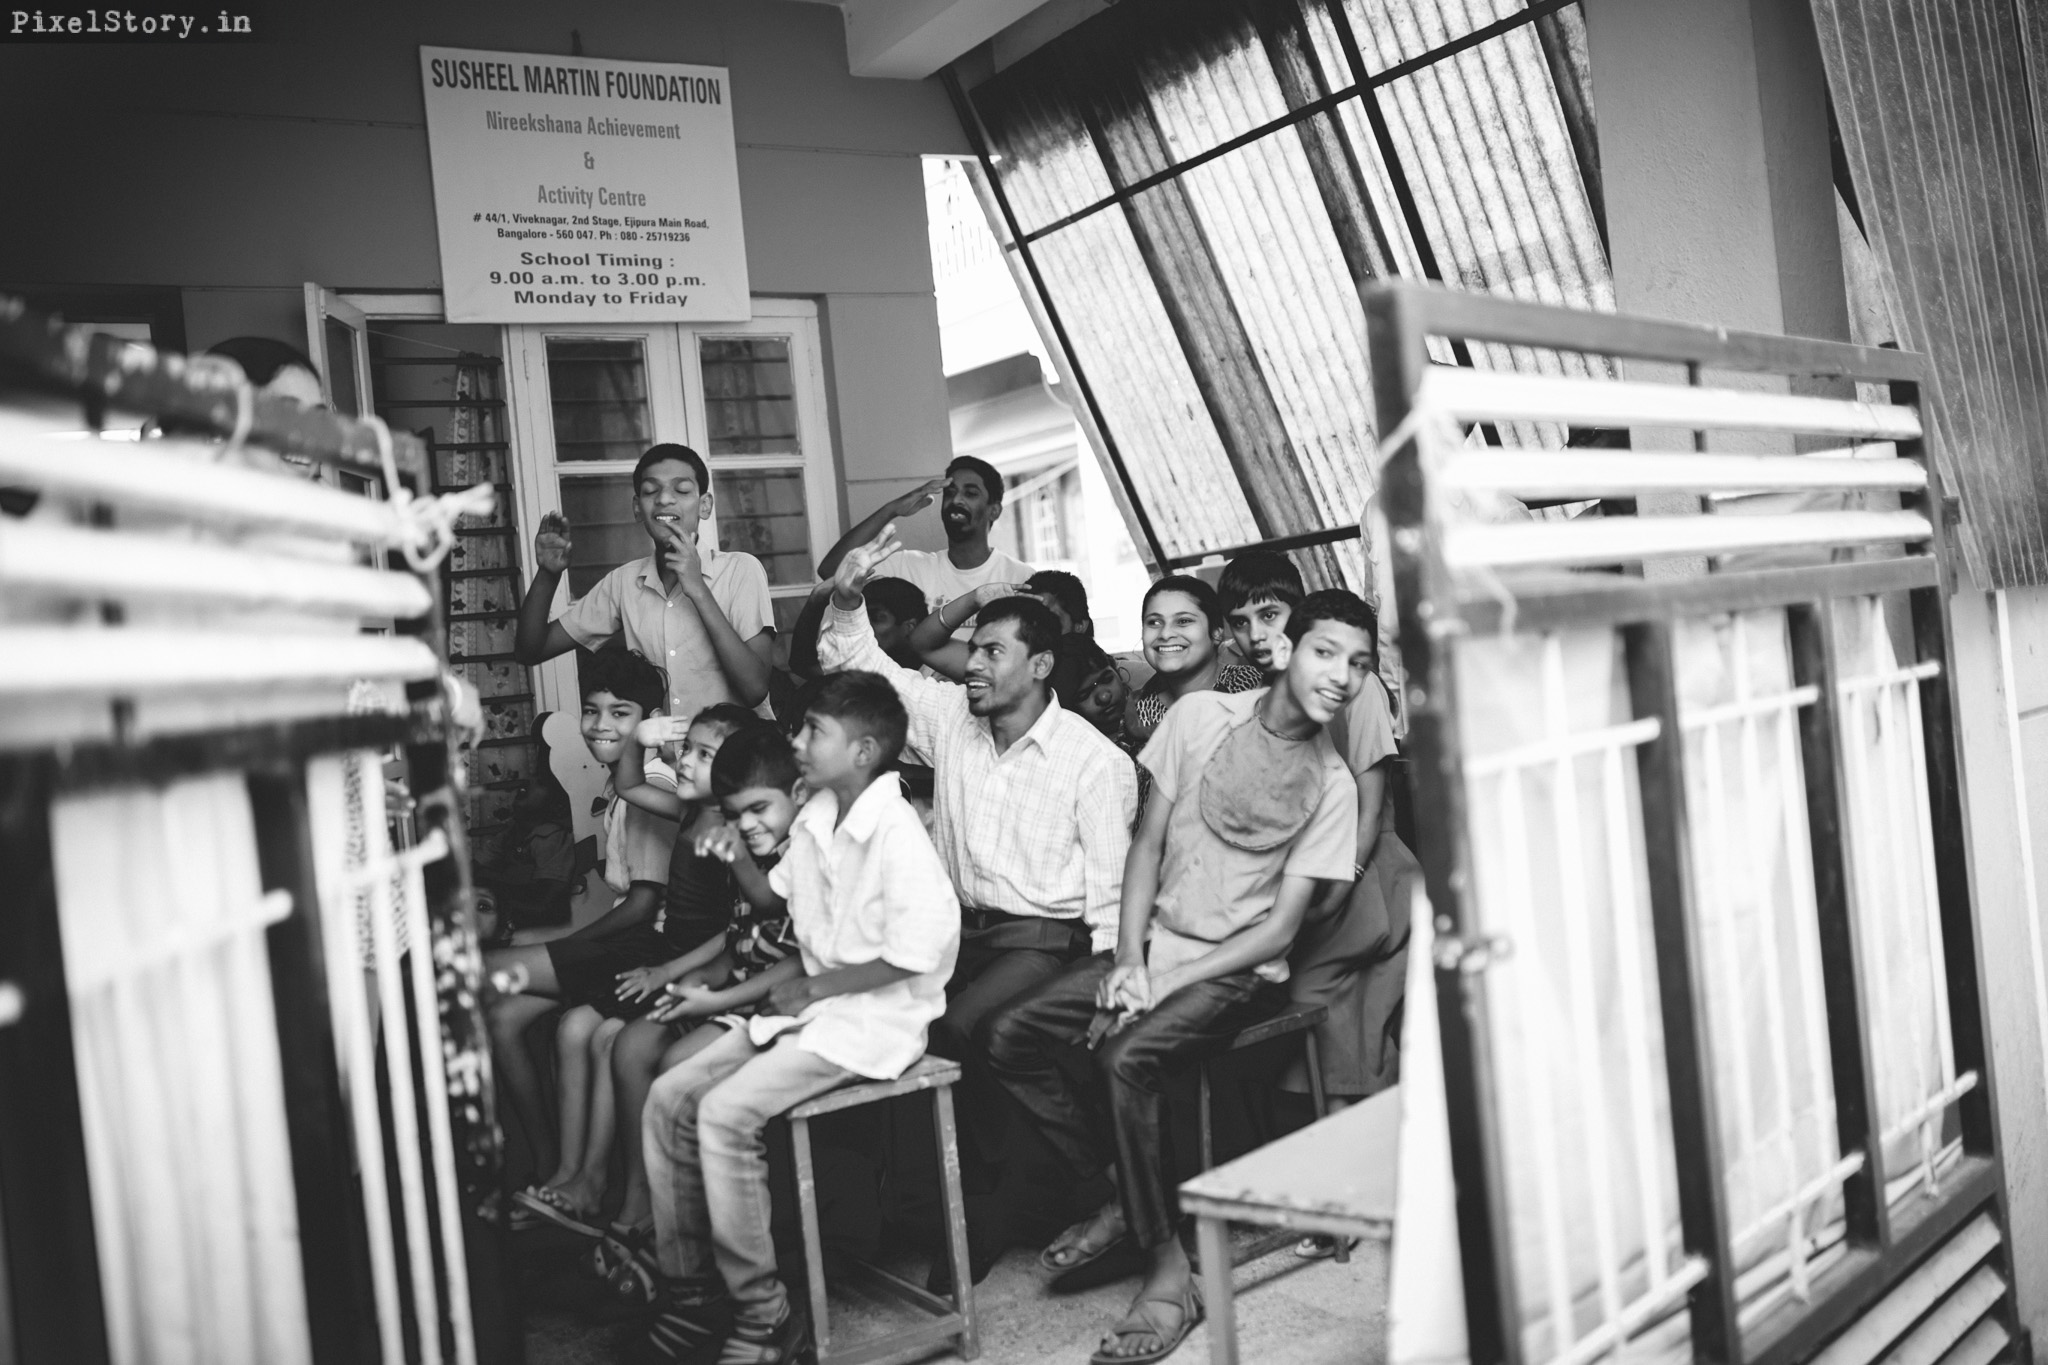 PixelStory-Orphanage-OldAge-Axis-Concentrix-29.jpg